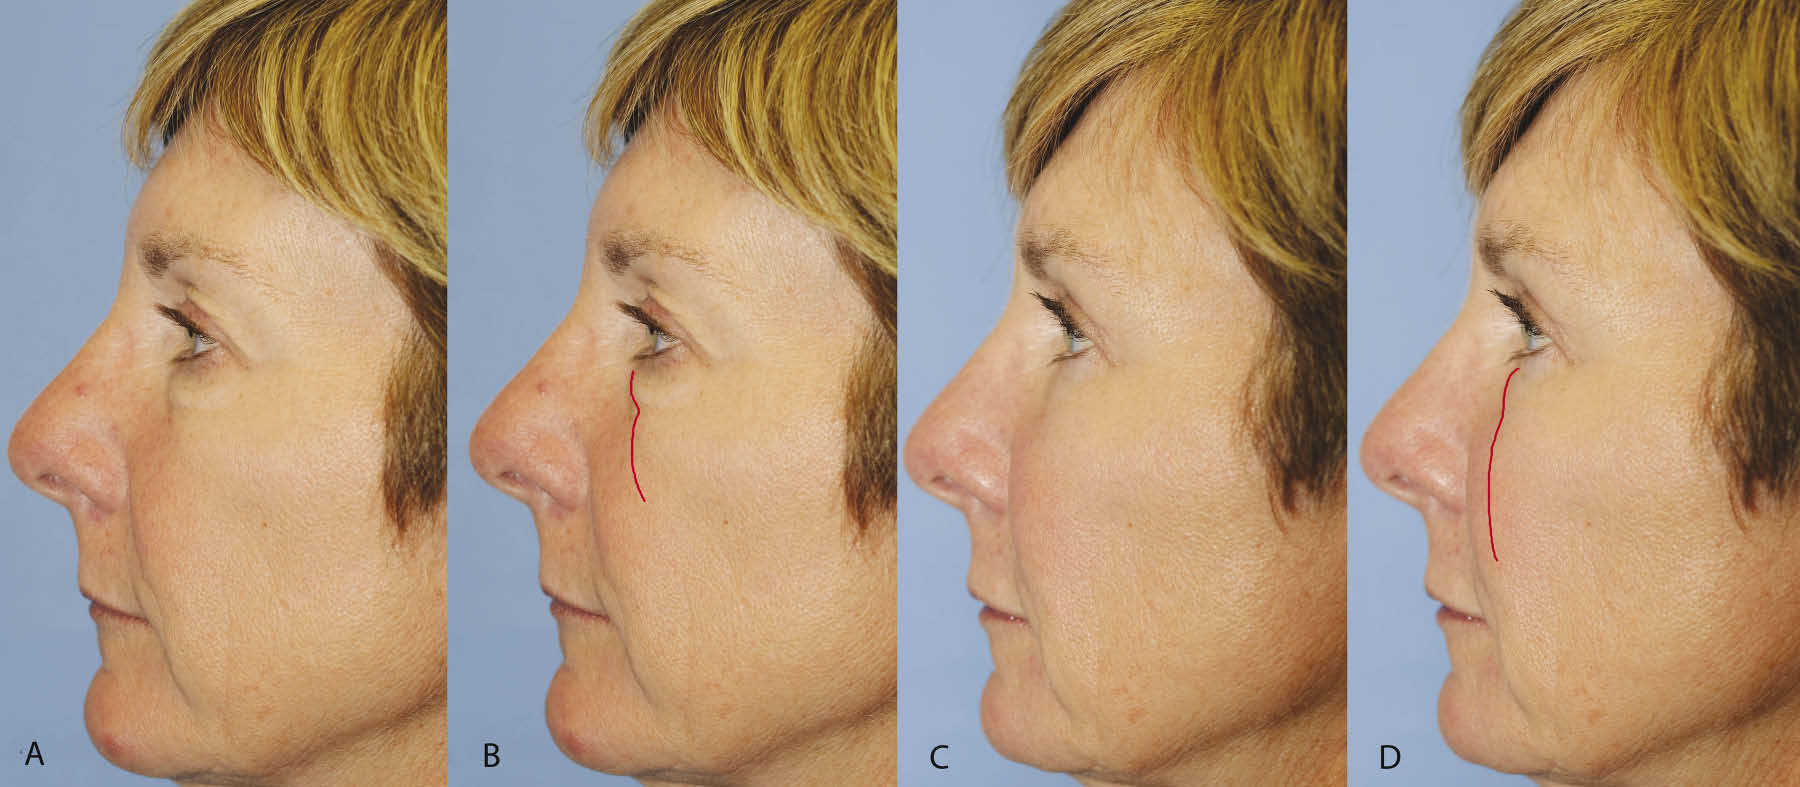 Upper and lower blepharoplasty with fat repositioning and augmentation